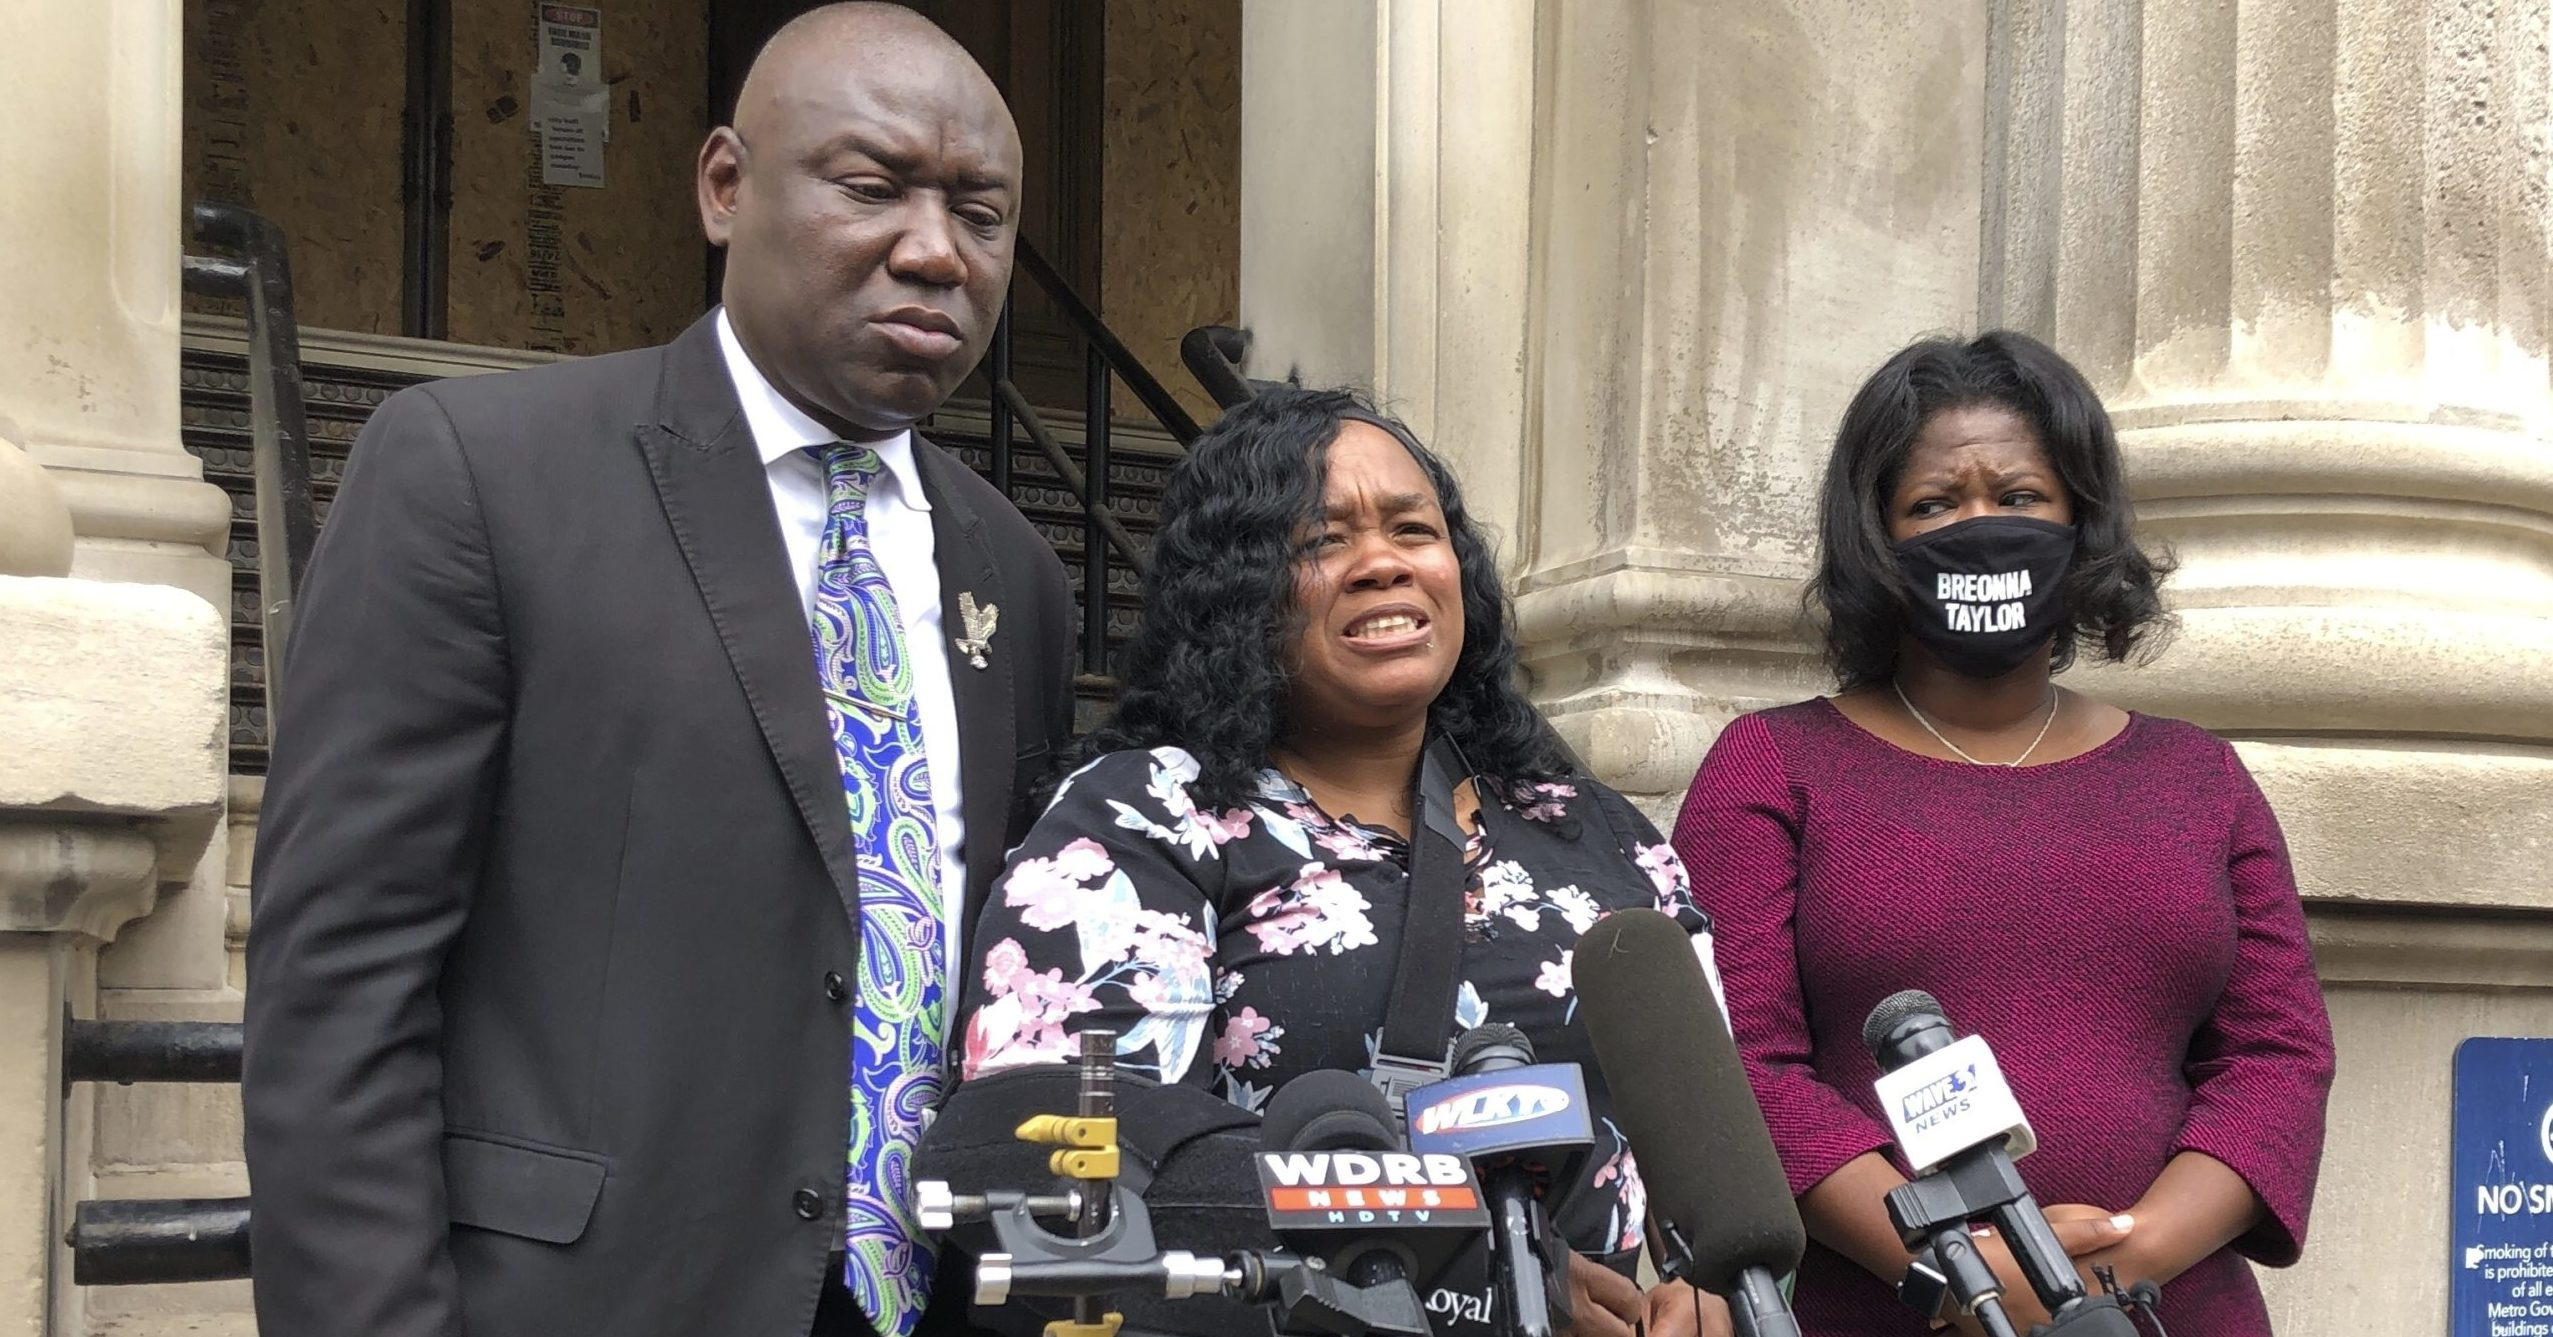 Tamika Palmer, the mother of Breonna Taylor, speaks to reporters in Louisville, Kentucky, on Aug. 13, 2020, five months after her daughter was shot to death by police.